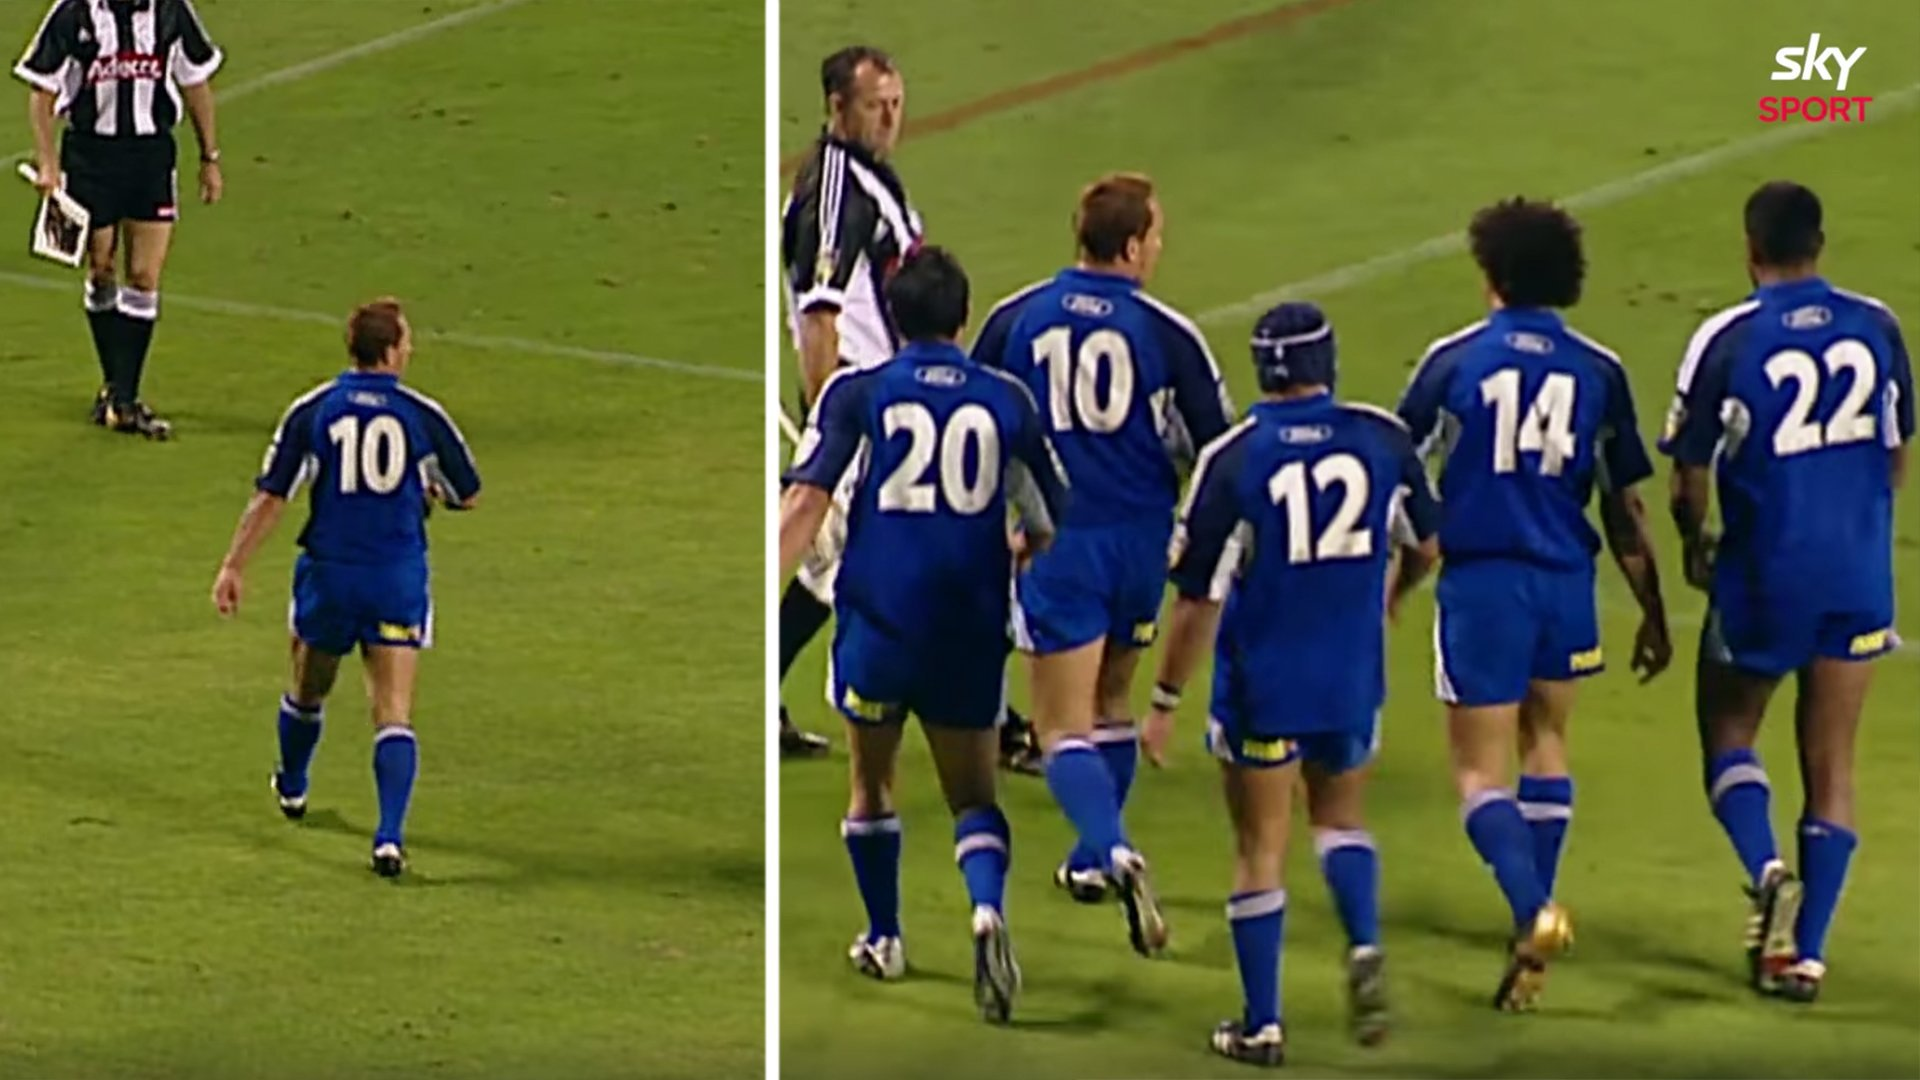 Super Rugby have just released the game when Carlos Spencer utterly humiliated the Crusaders